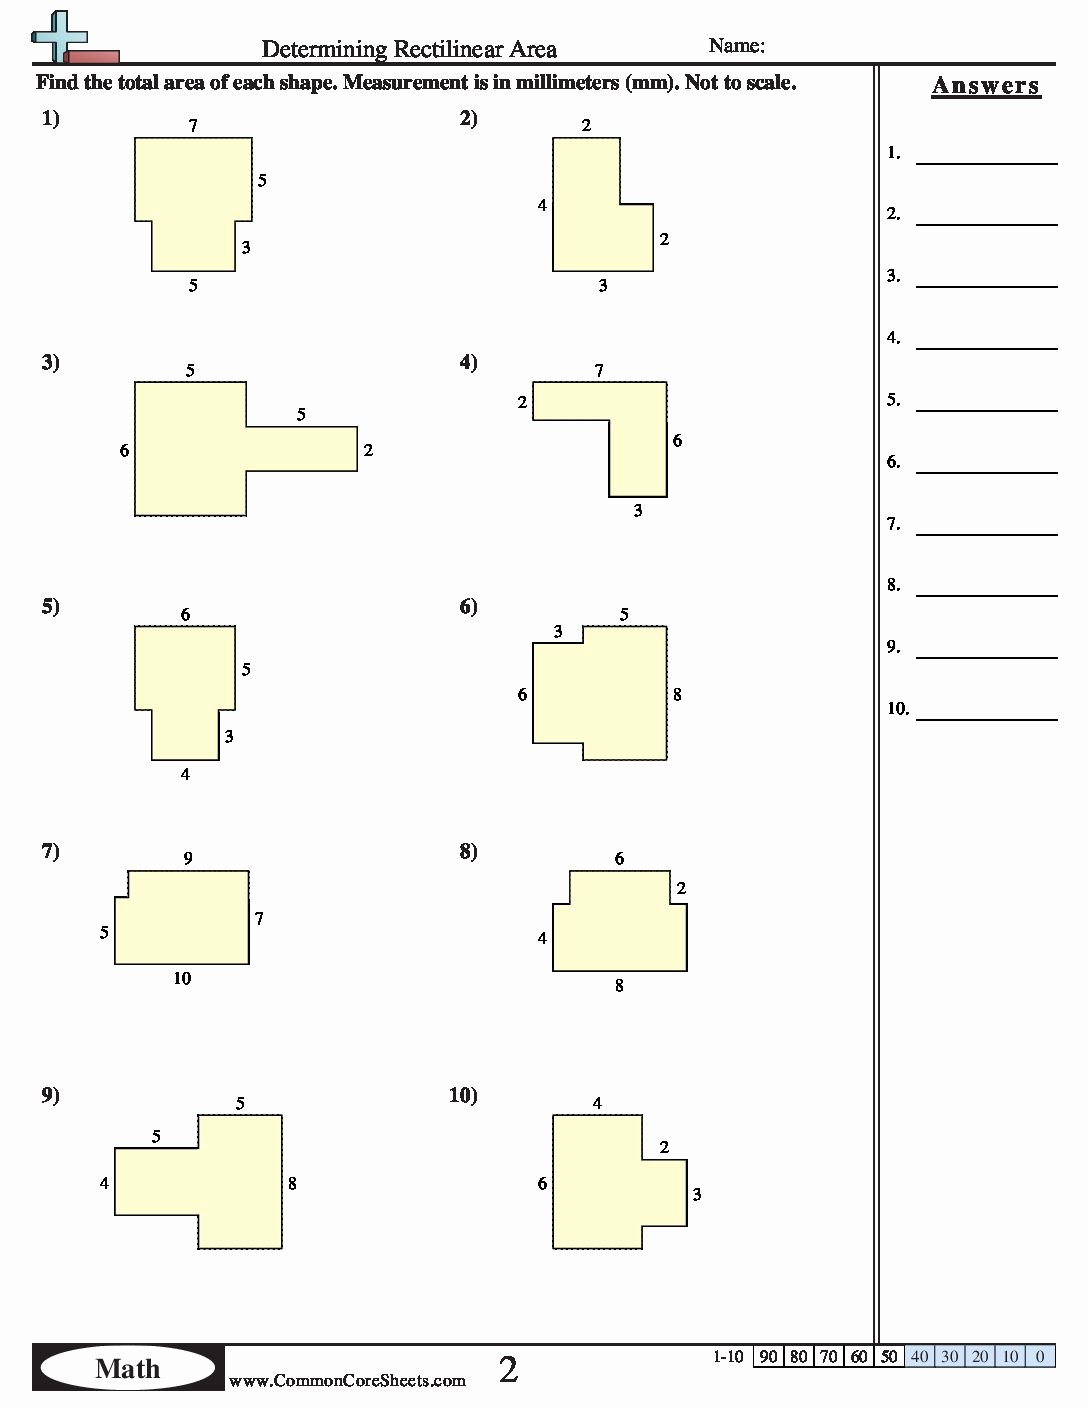 Multiplying Fractions Worksheets with Answers Fresh Dividing Fractions Worksheet with Answers Worksheet